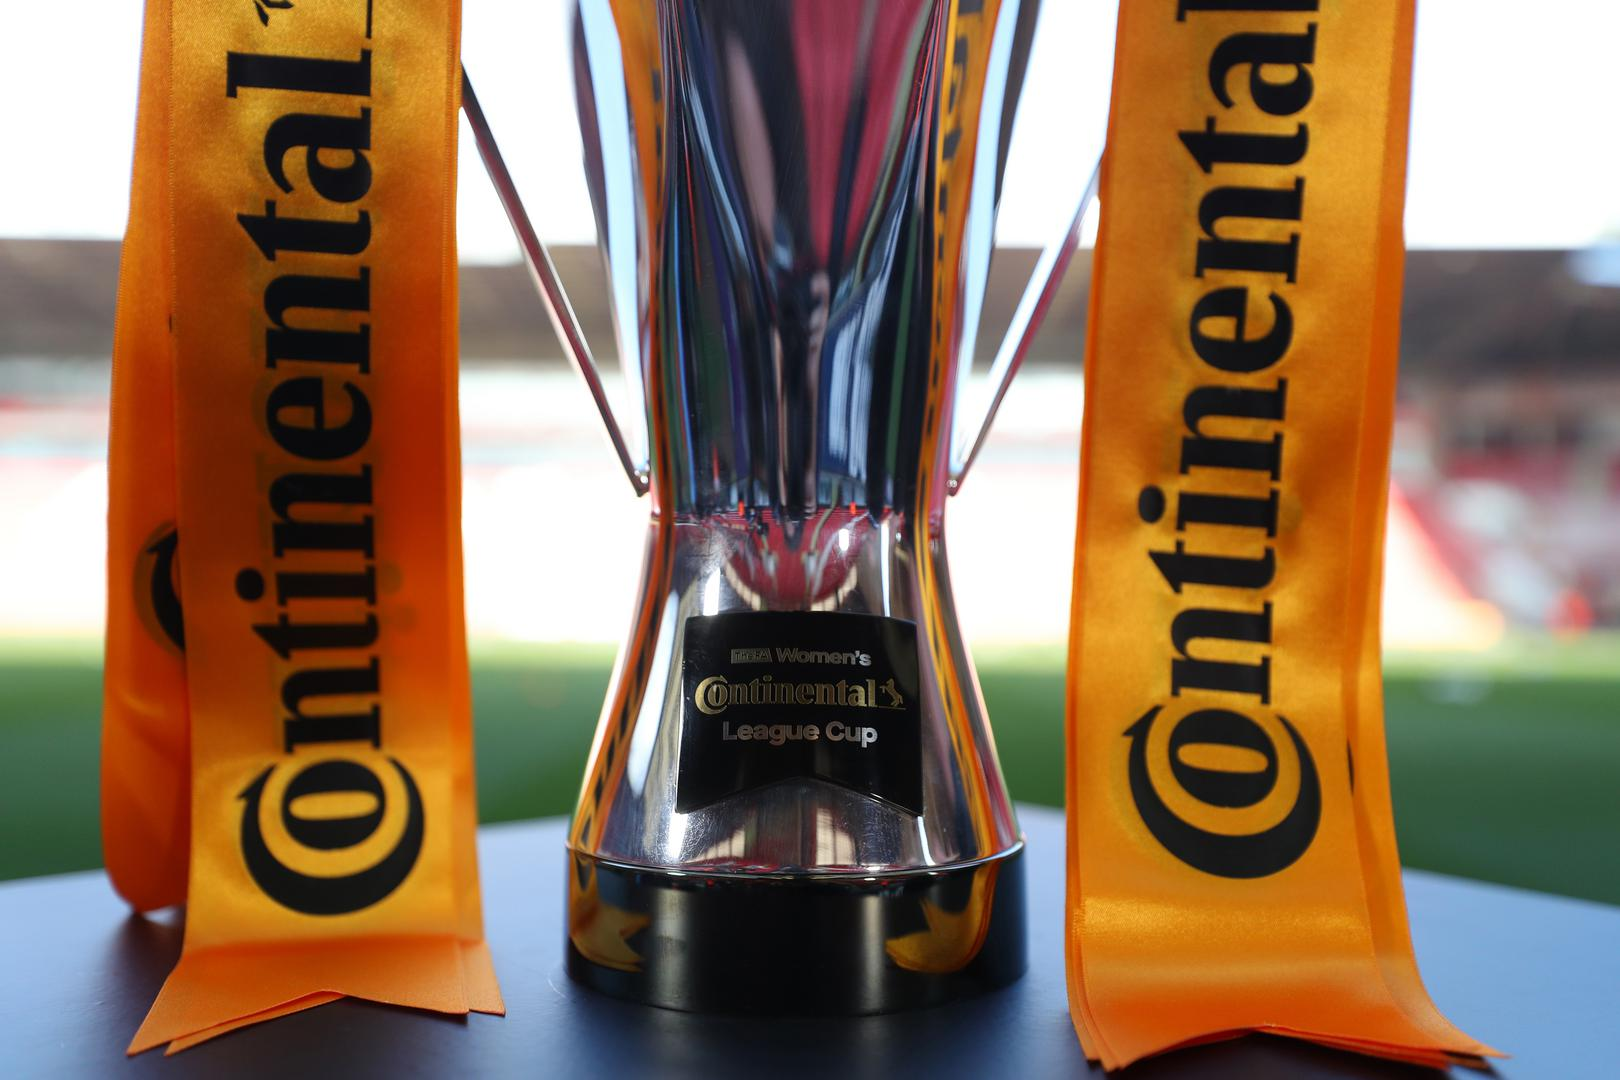 Continental Tyres Cup trophy.